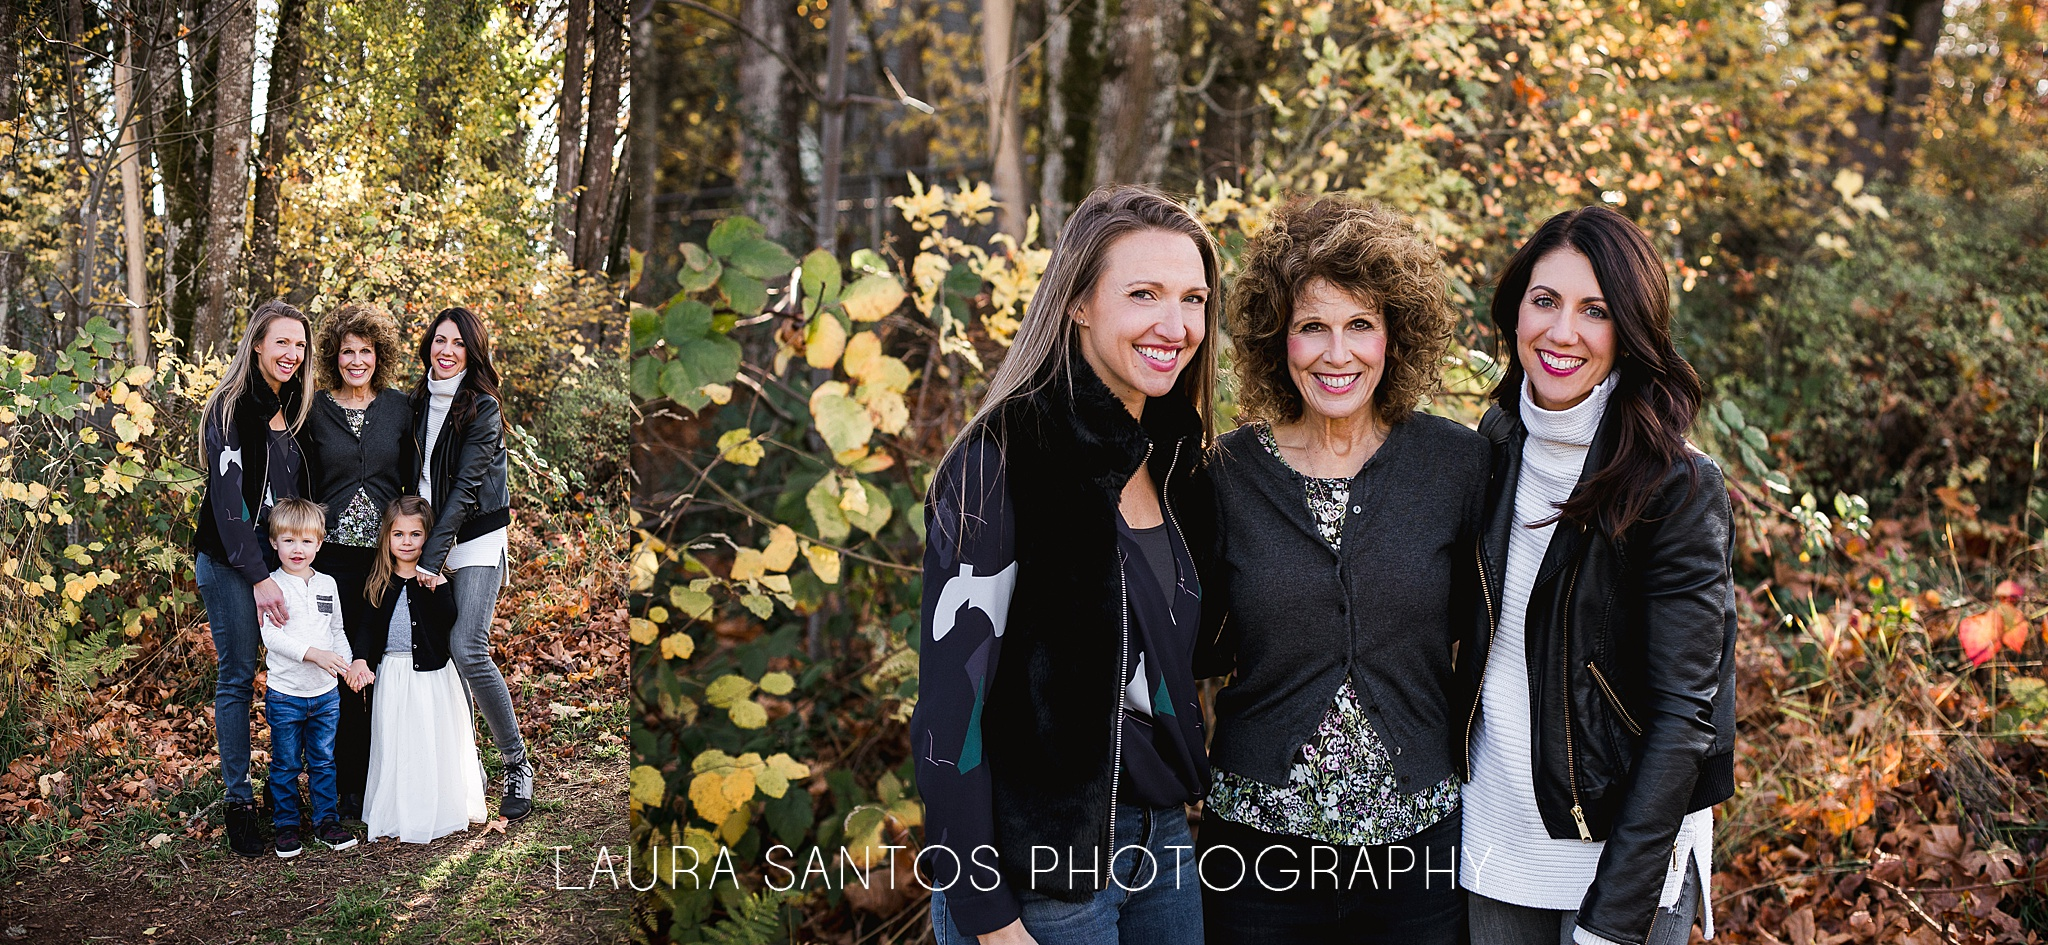 Laura Santos Photography Portland Oregon Family Photographer_0778.jpg